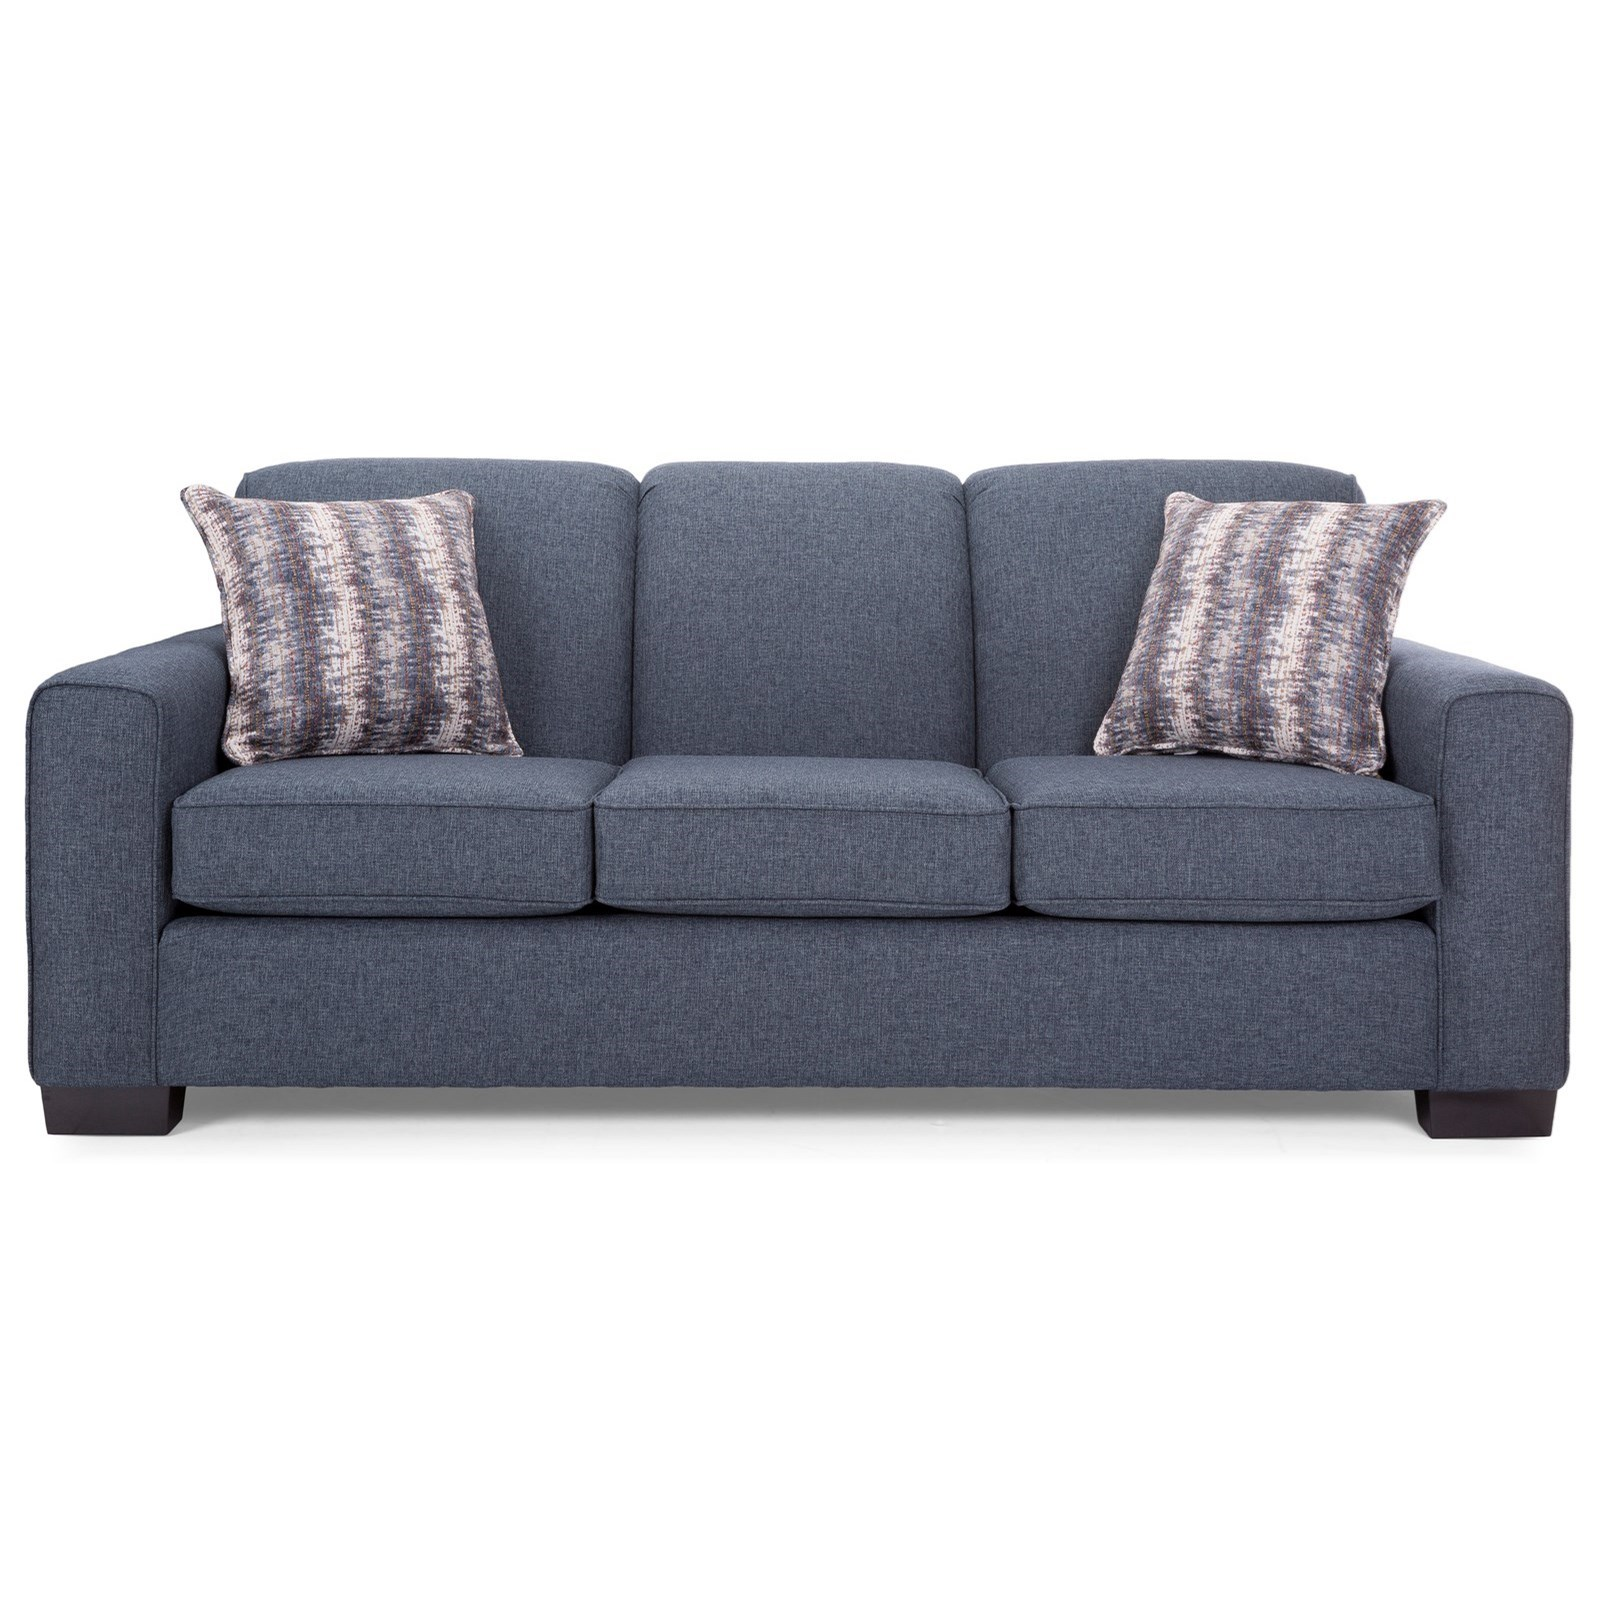 2805 Sofa by Decor-Rest at Johnny Janosik